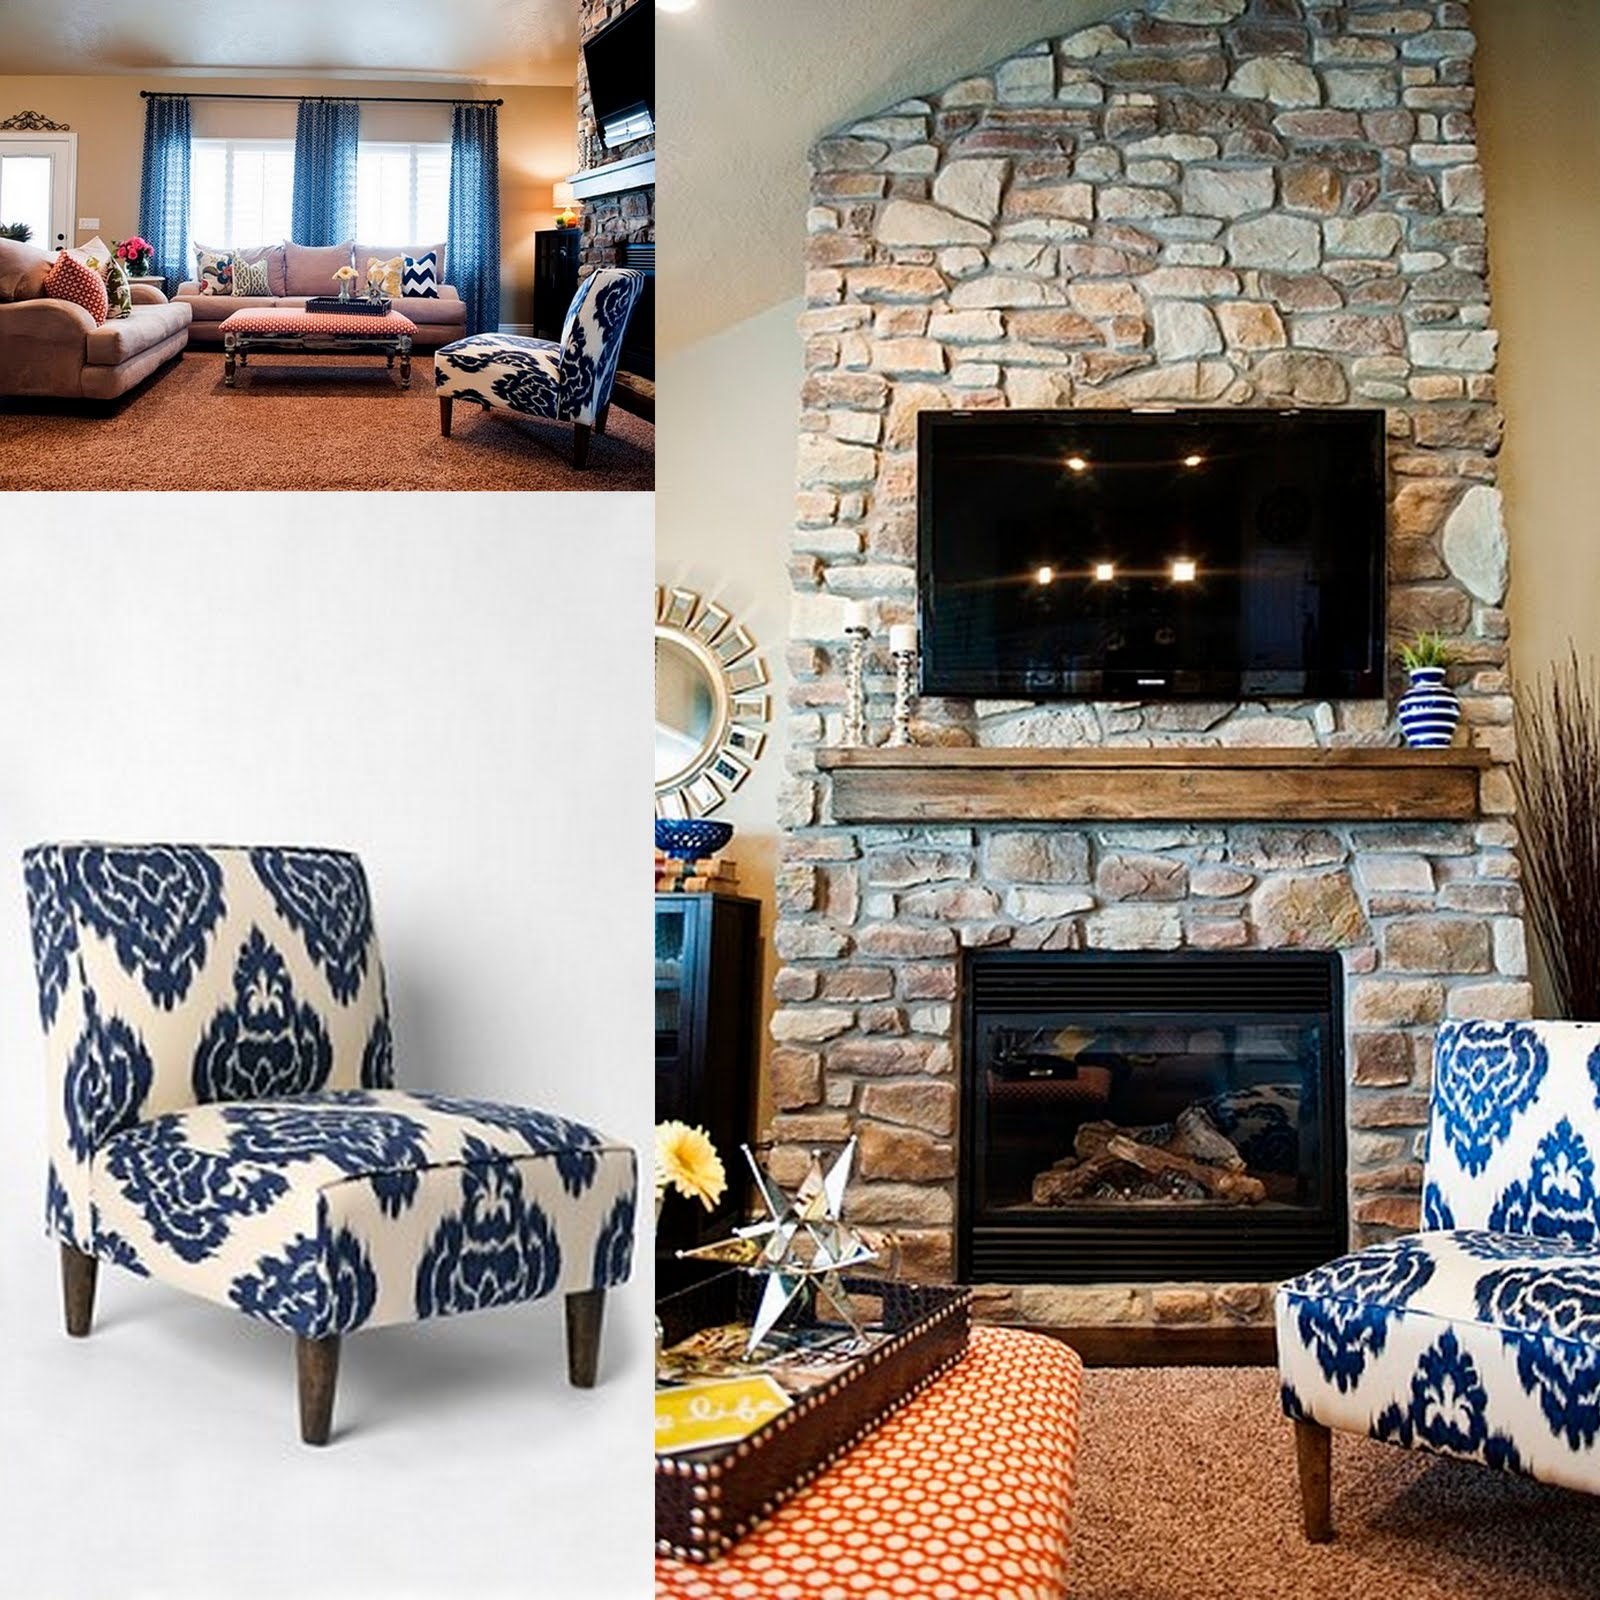 Decorate Your Furniture Items With Slipcovers